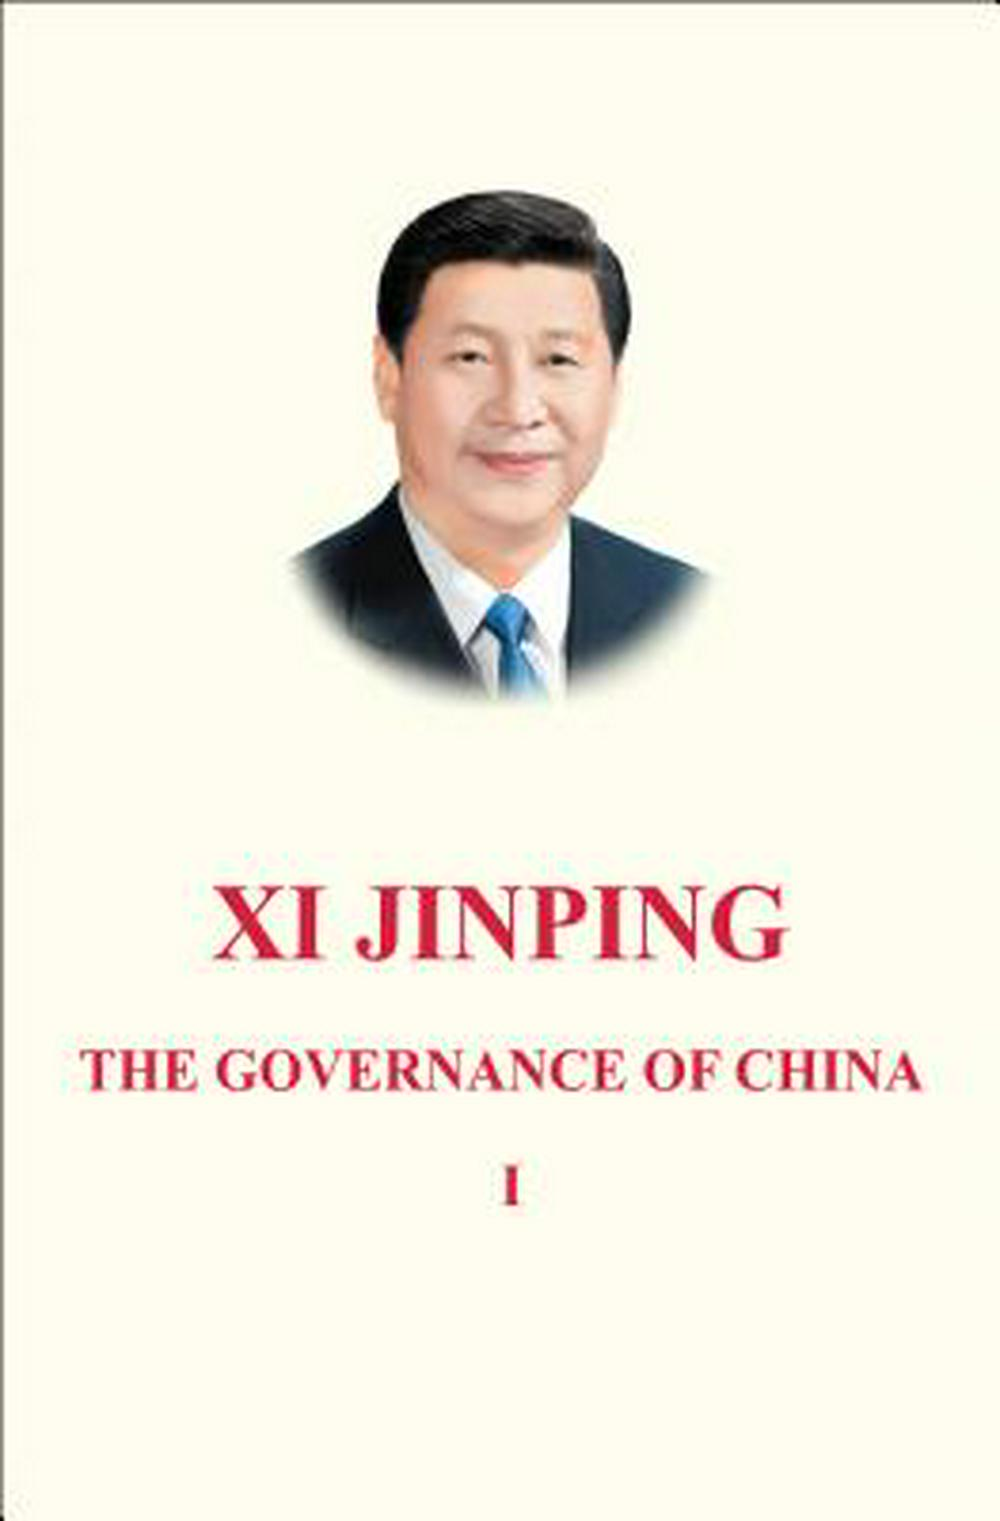 The Governance of China by Xi Jinping, ISBN: 9781602204096